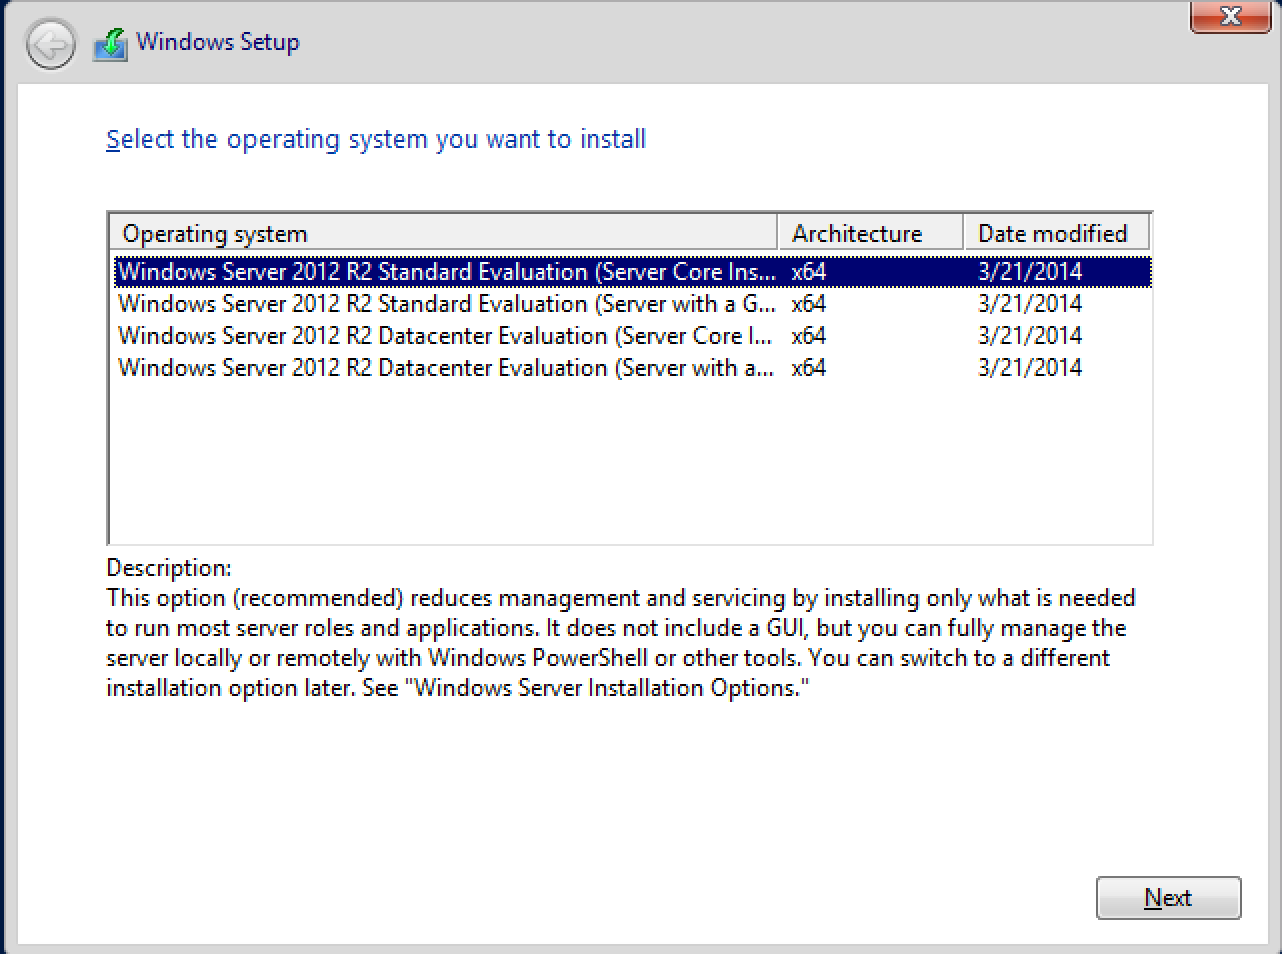 How to create an automated install for Windows Server 2012 R2